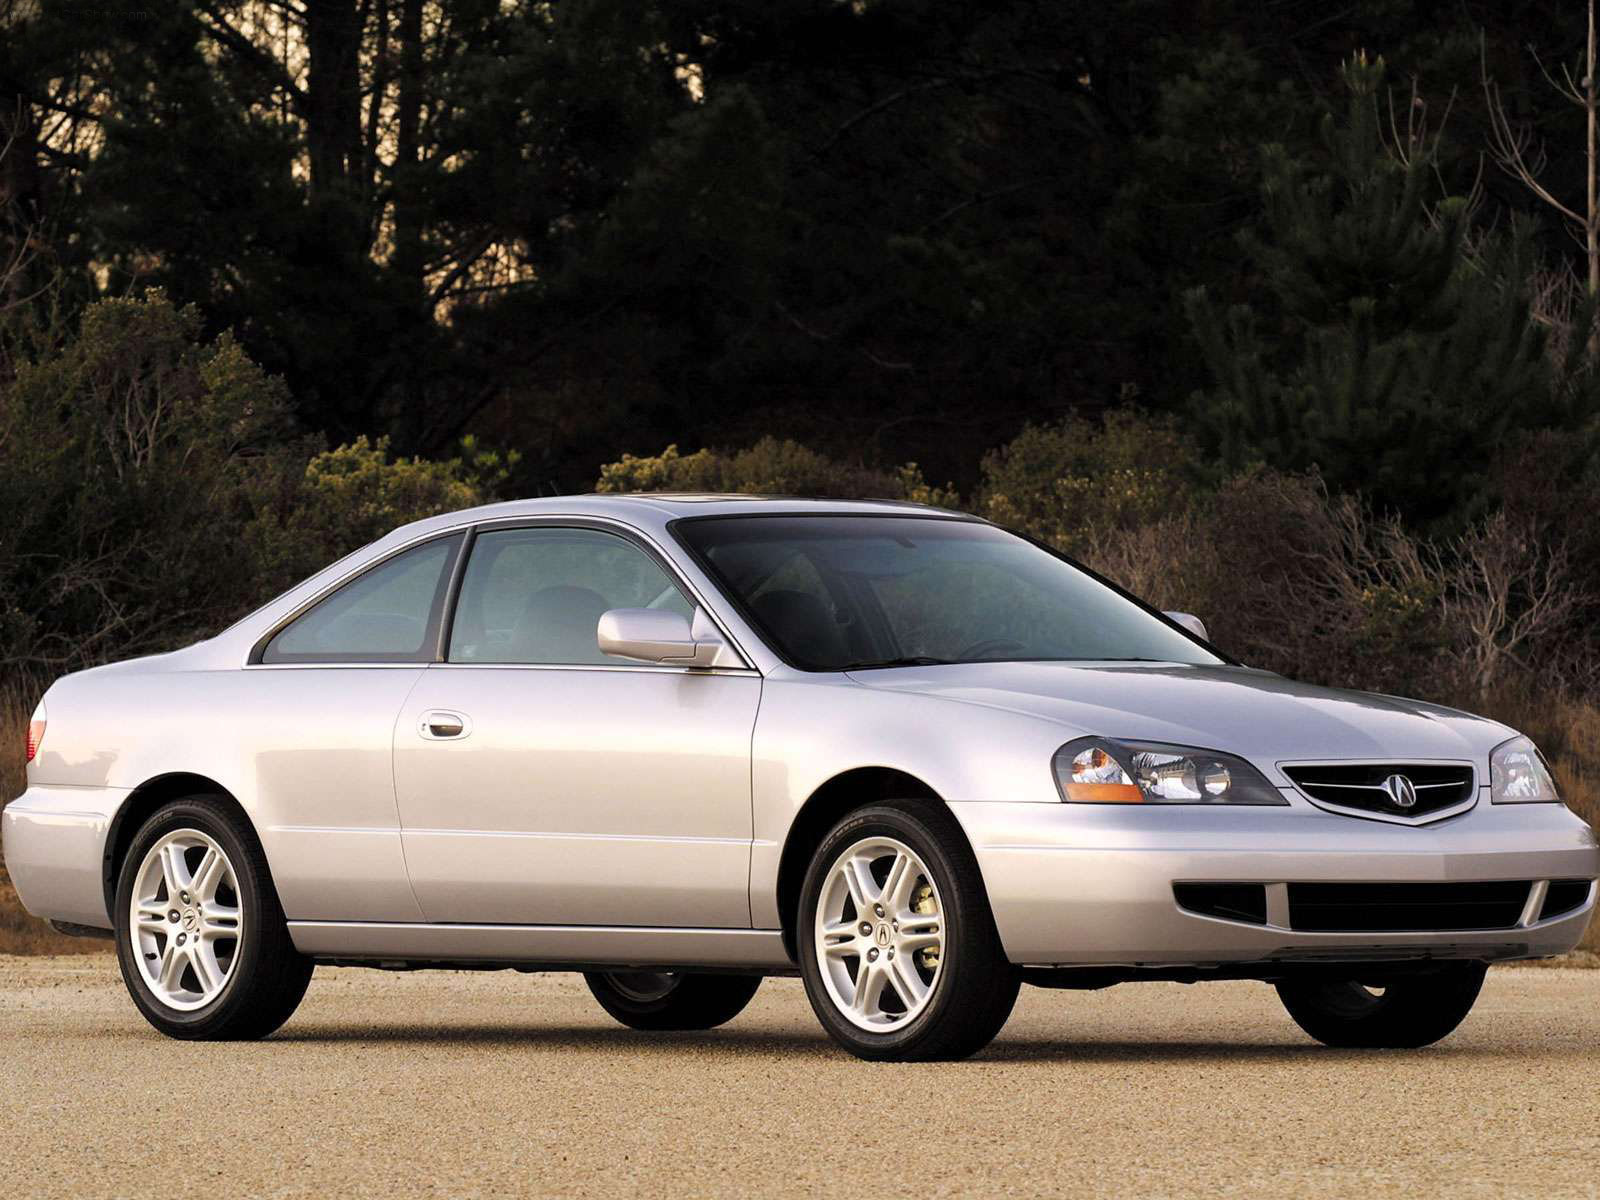 2003 Acura 3.2 CL Type-S photo - 10